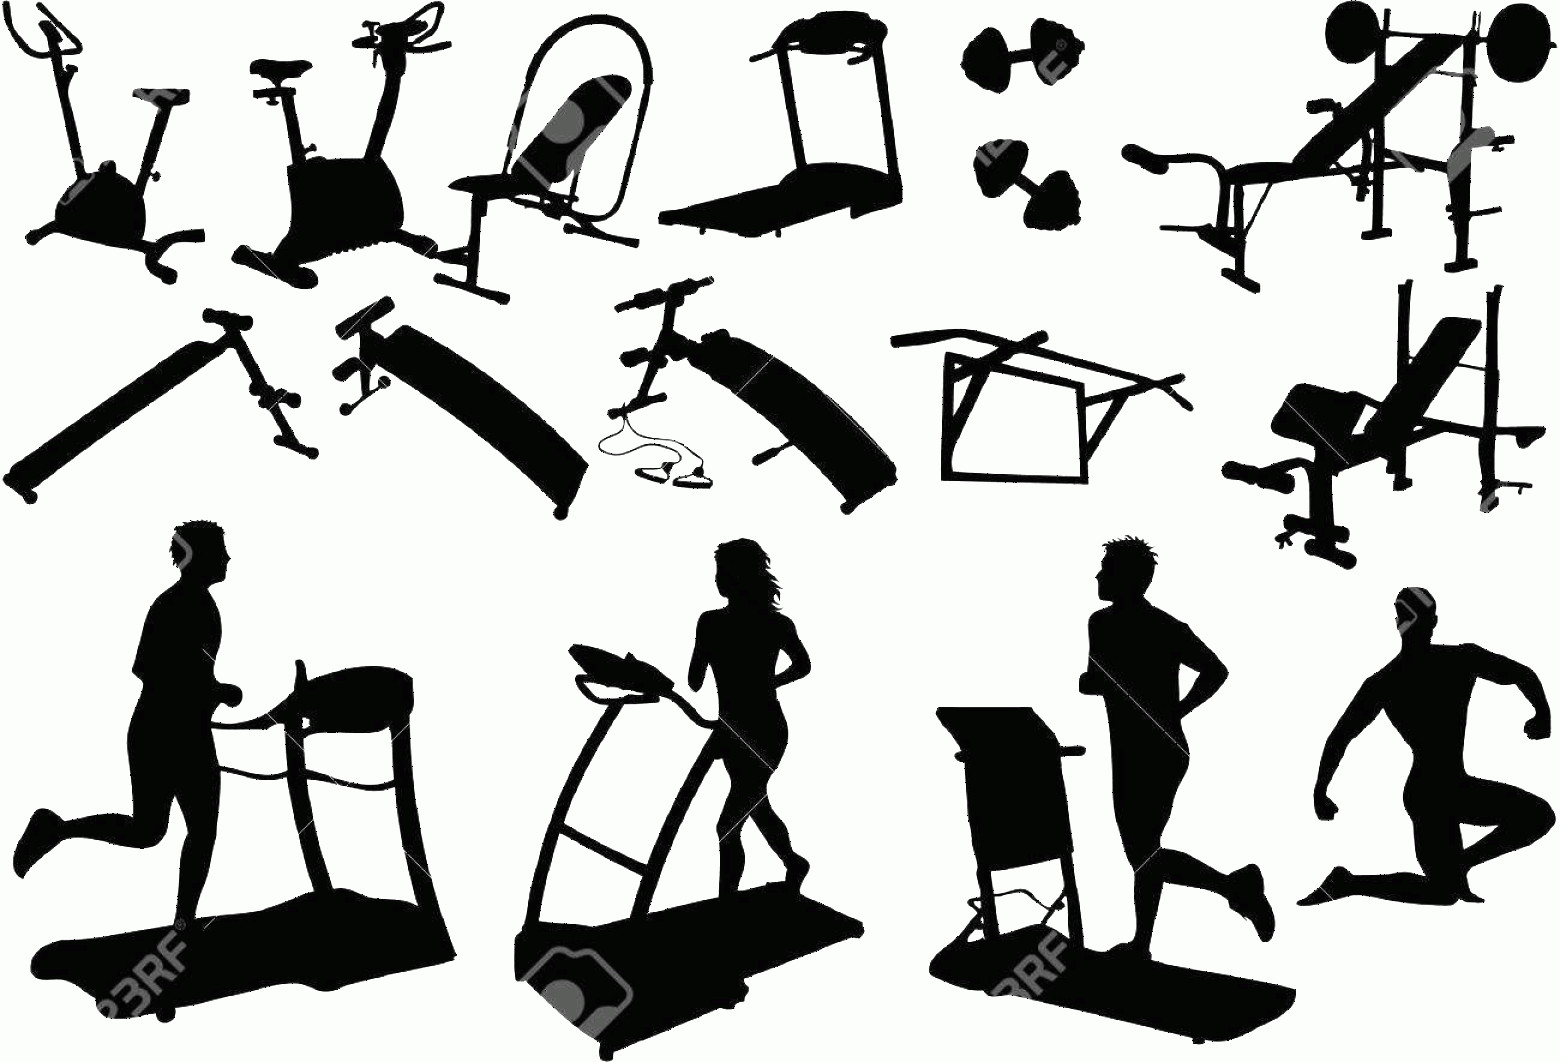 Vector Gym Equipment: Photogym Equipment Made In The Image Vectors